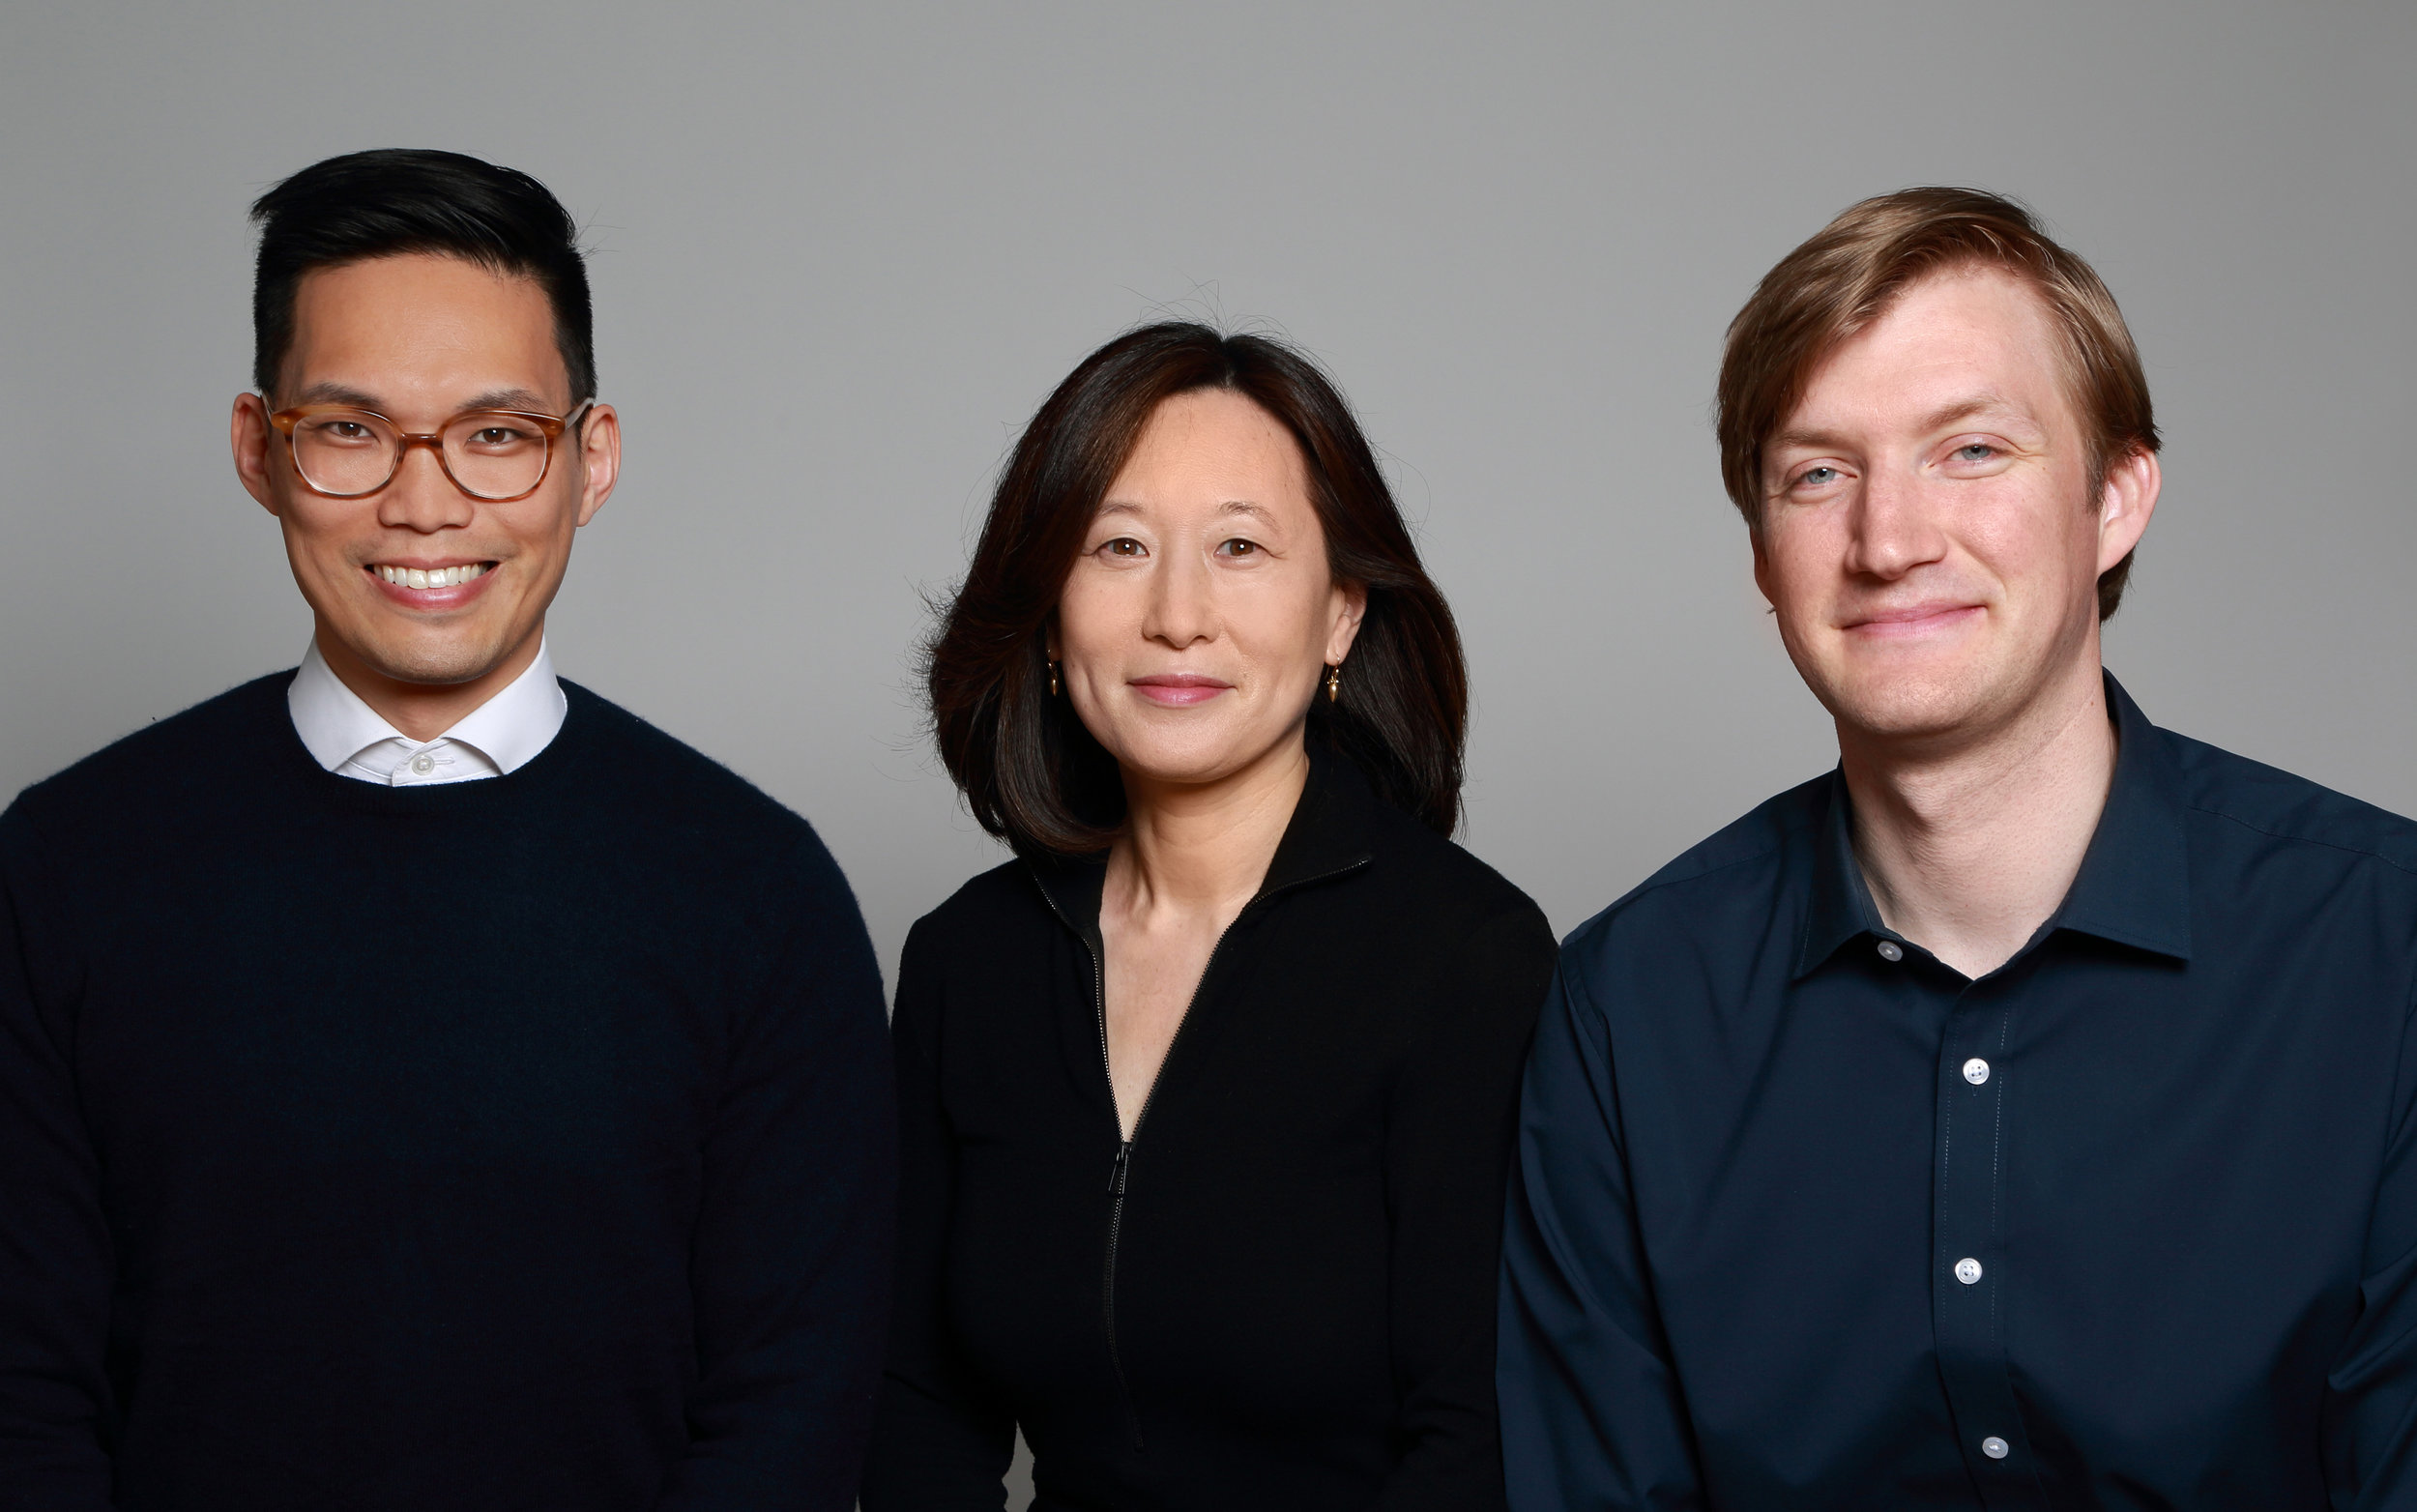 Left to right: Bryan Chou, Mikyoung Kim, and Ian Downing of Mikyoung Kim Design